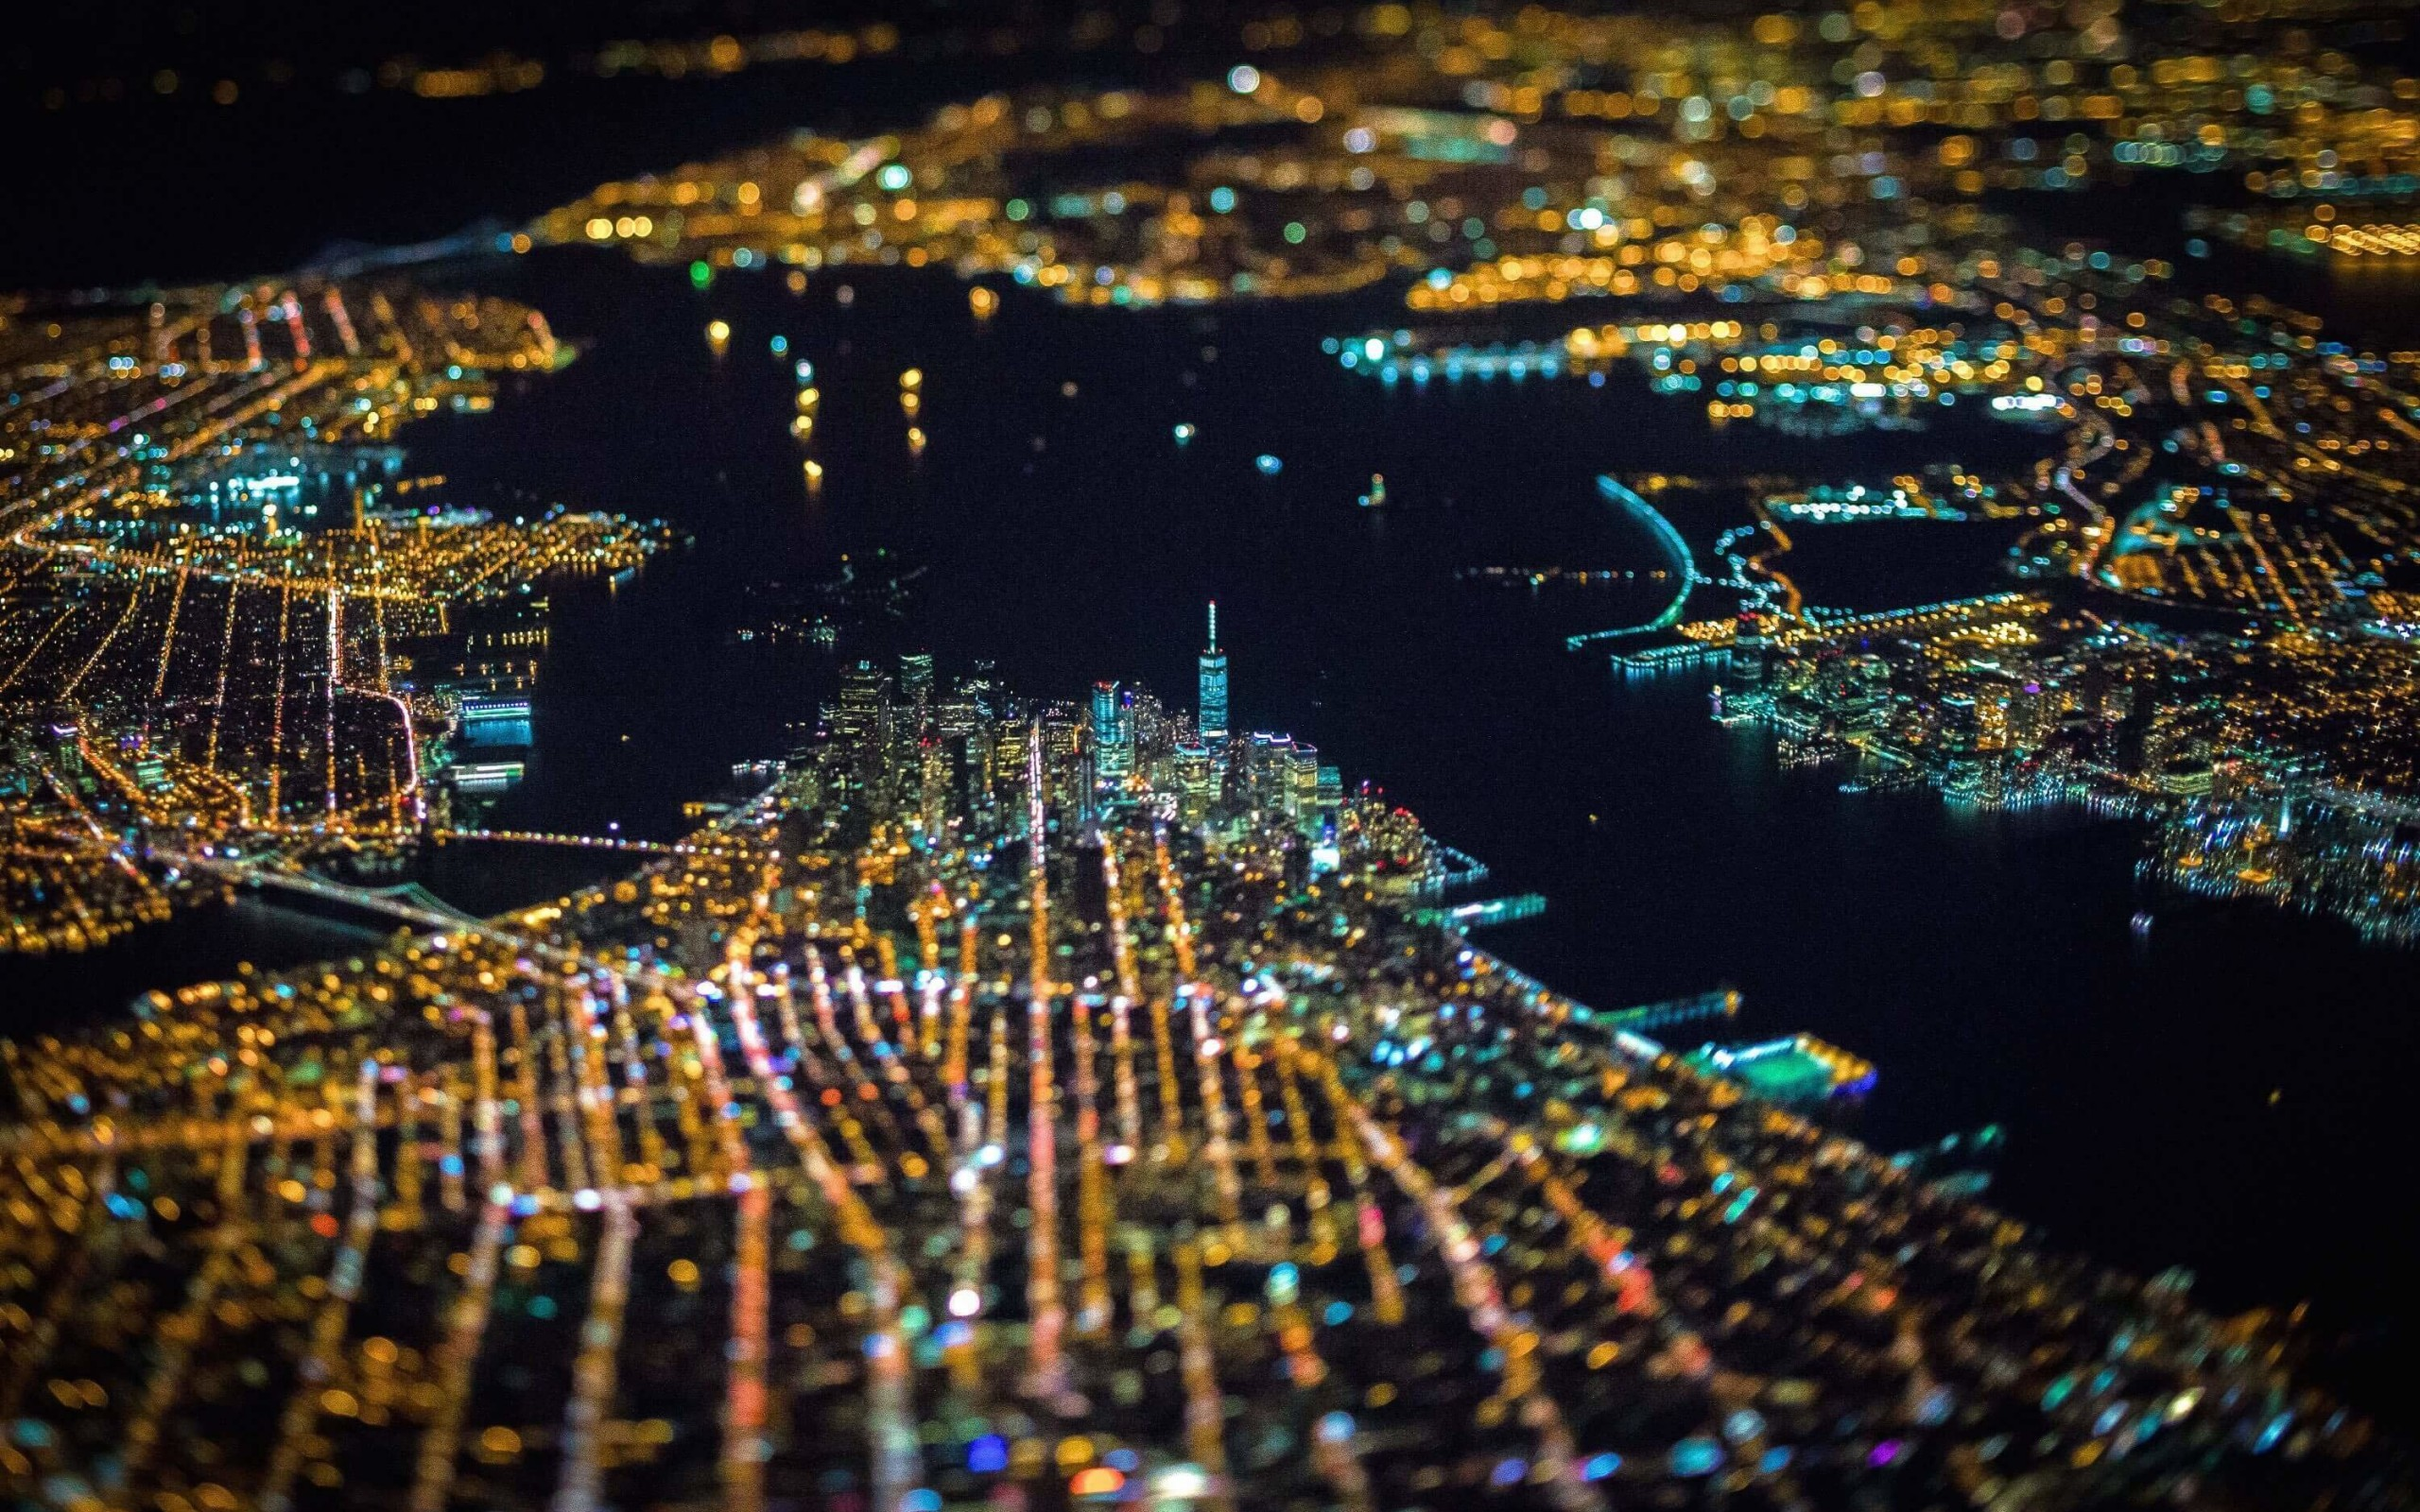 New York City From Above Wallpaper for Desktop 2560x1600